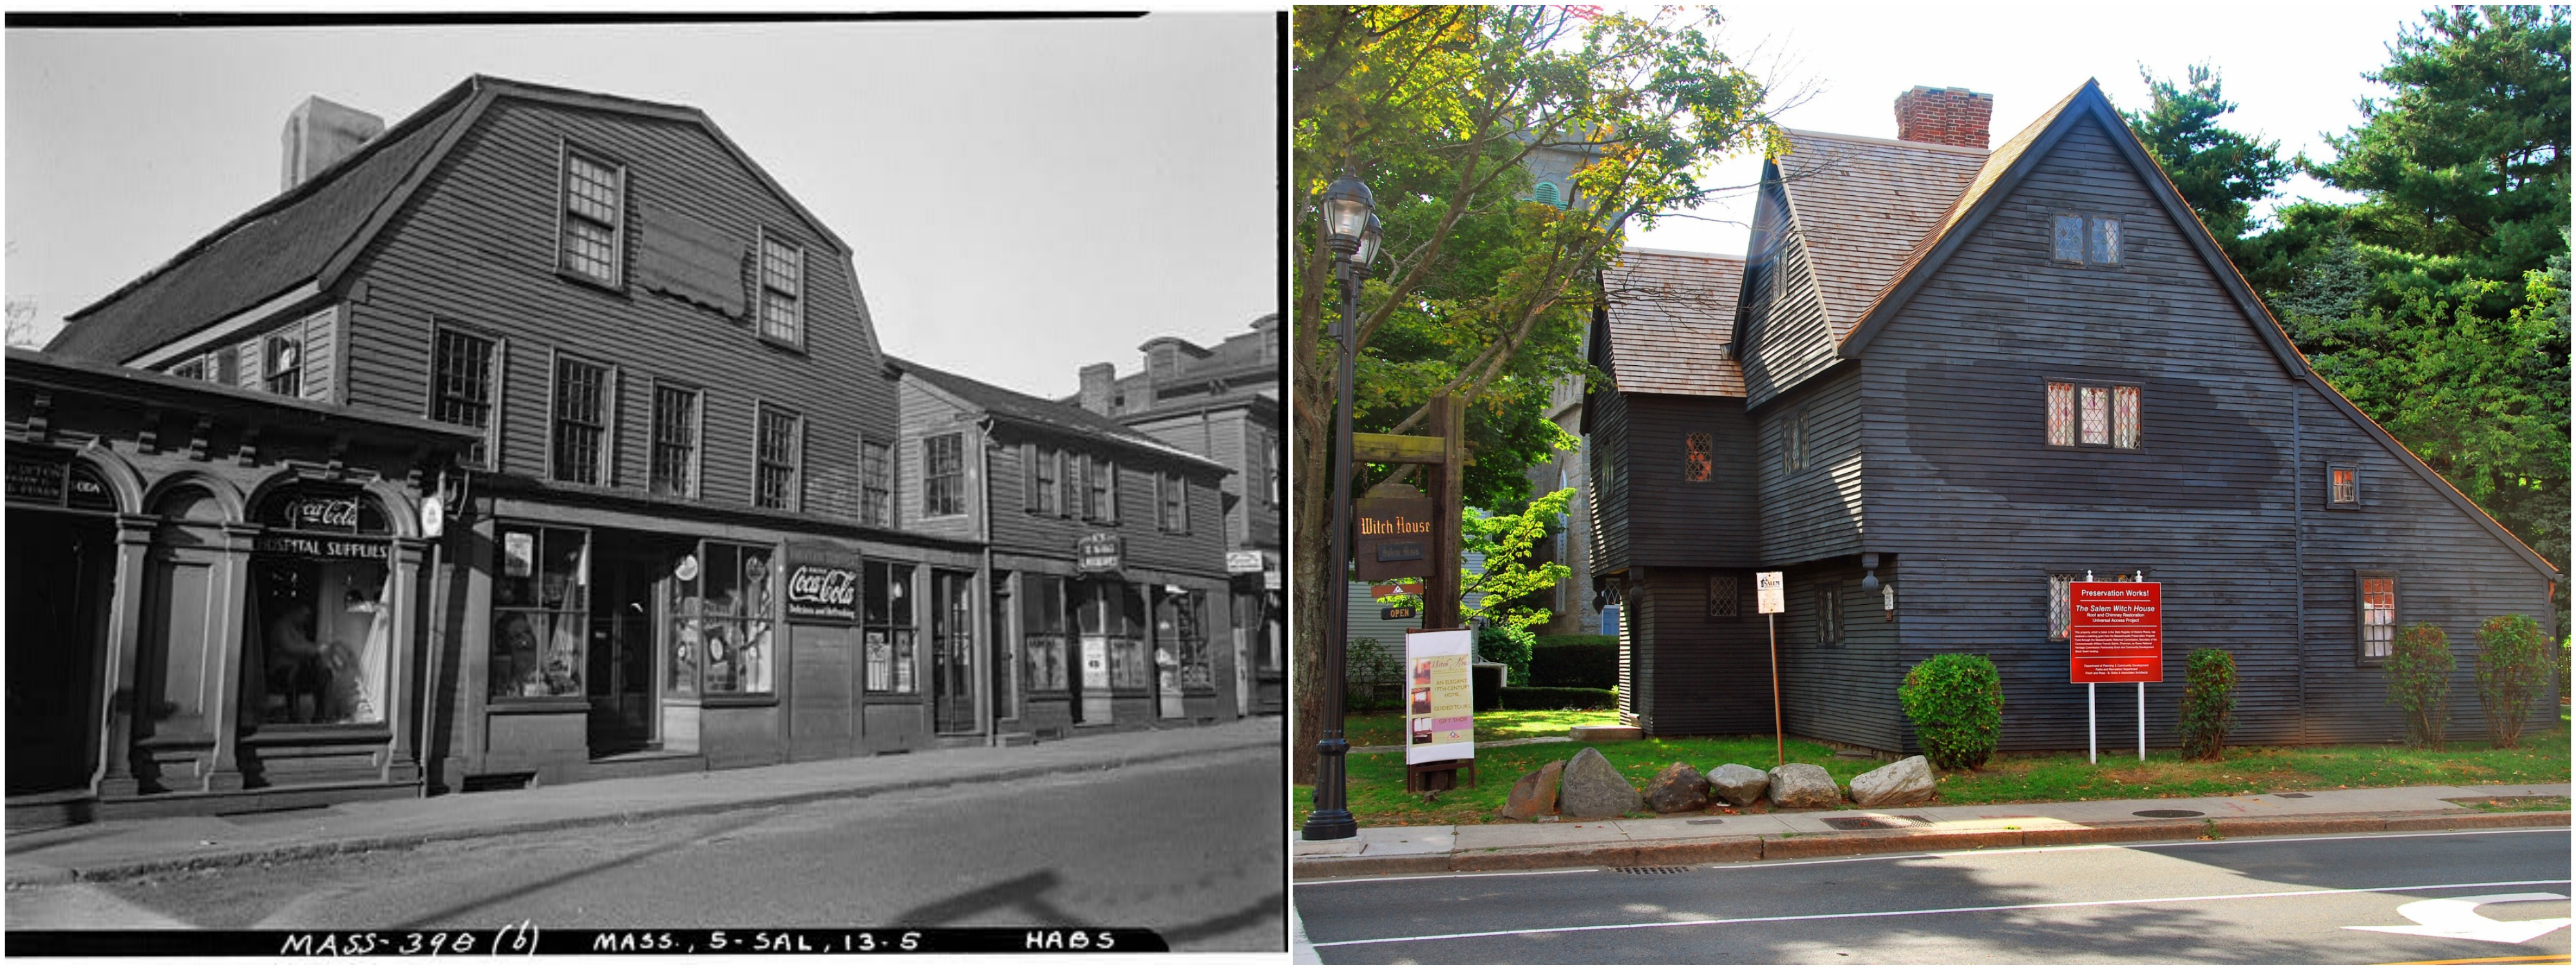 The Witch House as it stood on Essex Street at the time of the Historic American Buildings Survey (HABS) report, c. 1933; the Witch House as it now stands